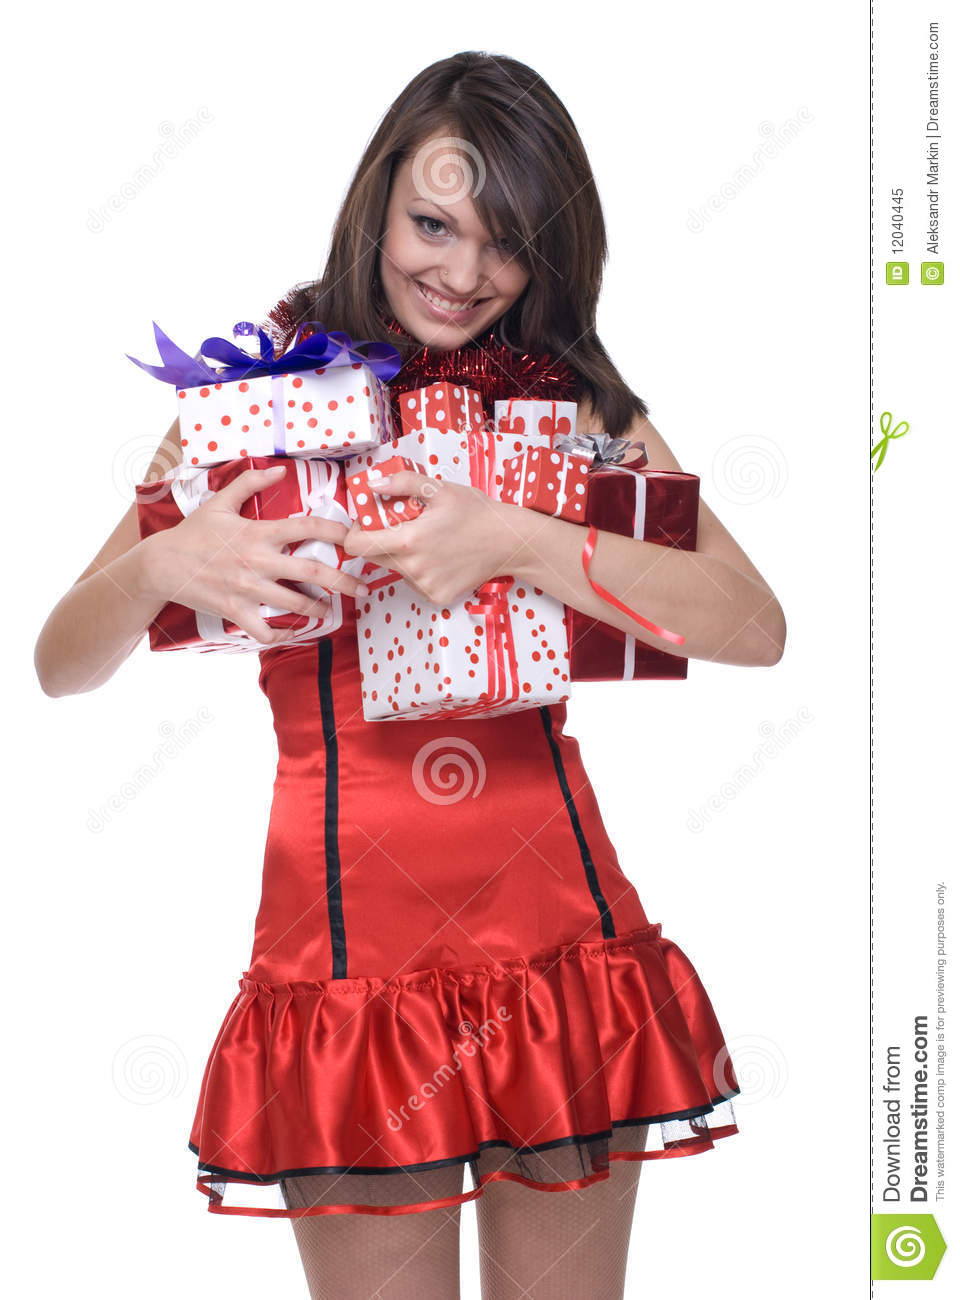 santa claus single girls These santa claus costumes are fun for any christmas event this holiday season we have adult, kids, and plus size santa costumes at great prices.